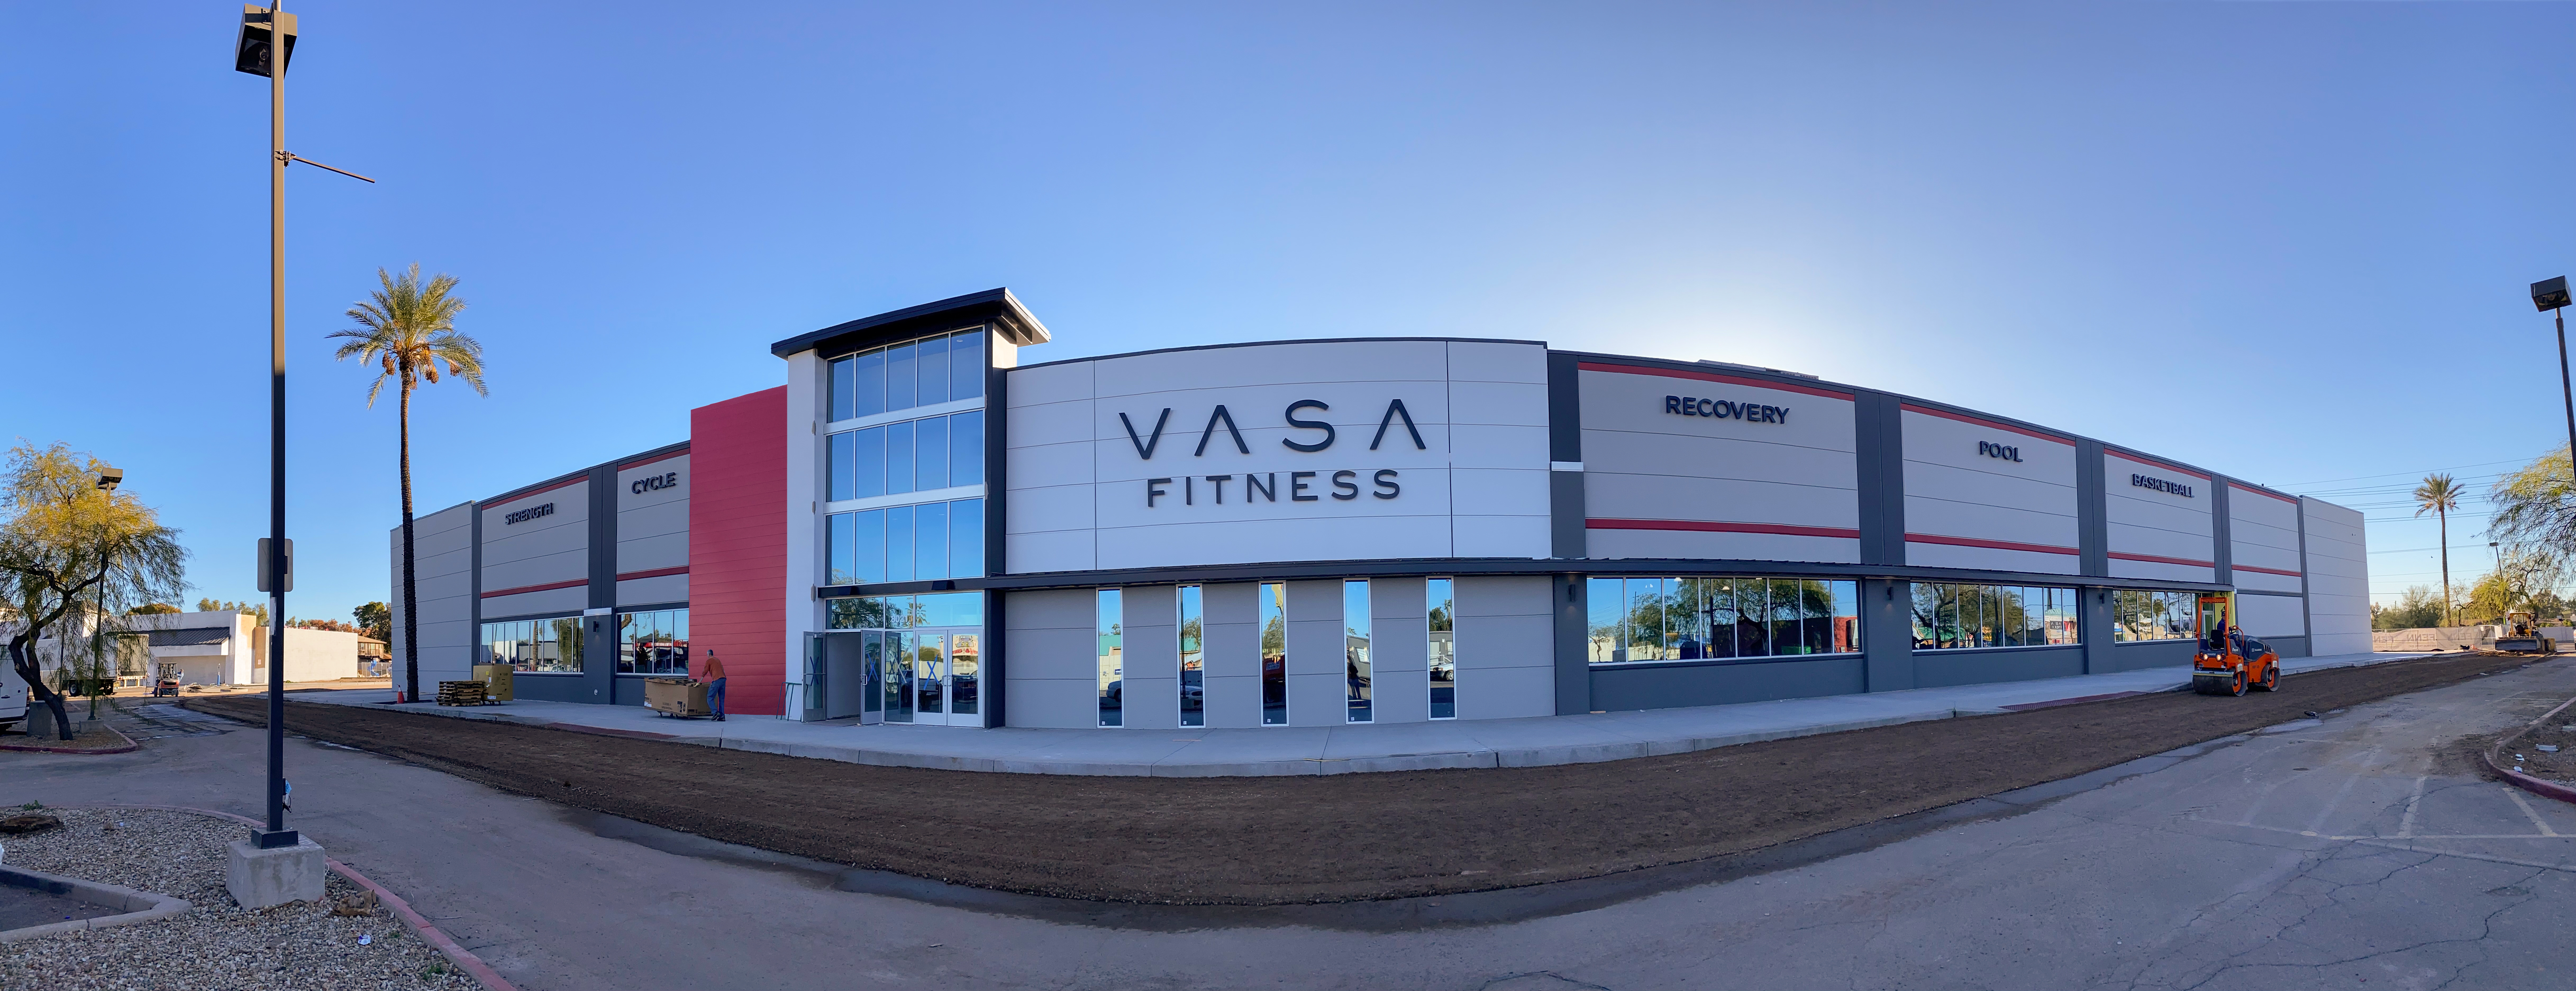 Vasa Fitness To Open Three New Clubs In High Growth Markets In March 2021 Club Industry